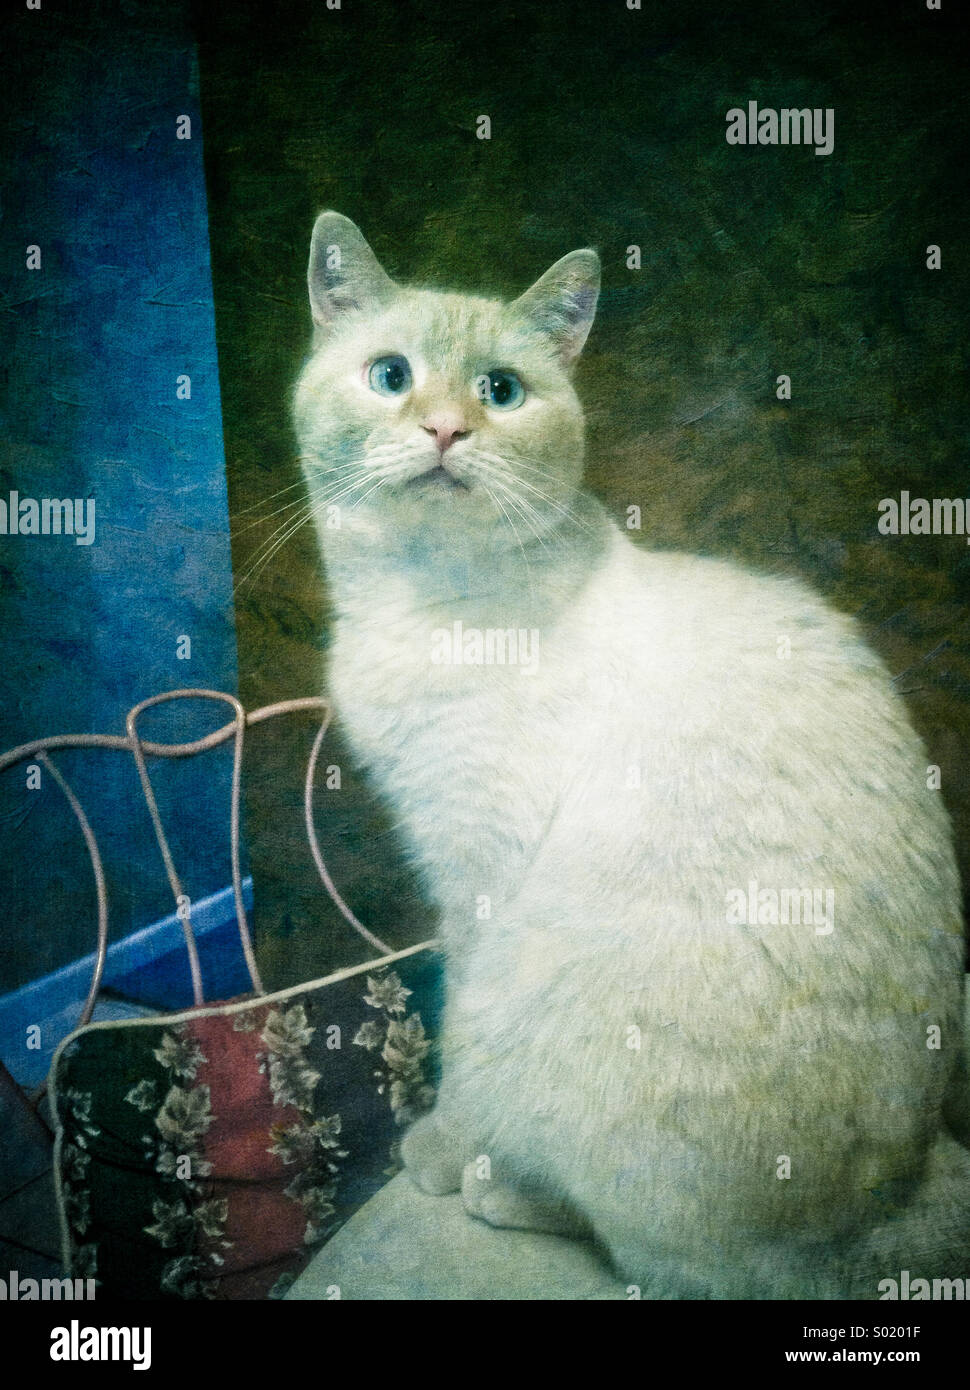 An artistic rendering of a white flame point Siamese cat - Stock Image